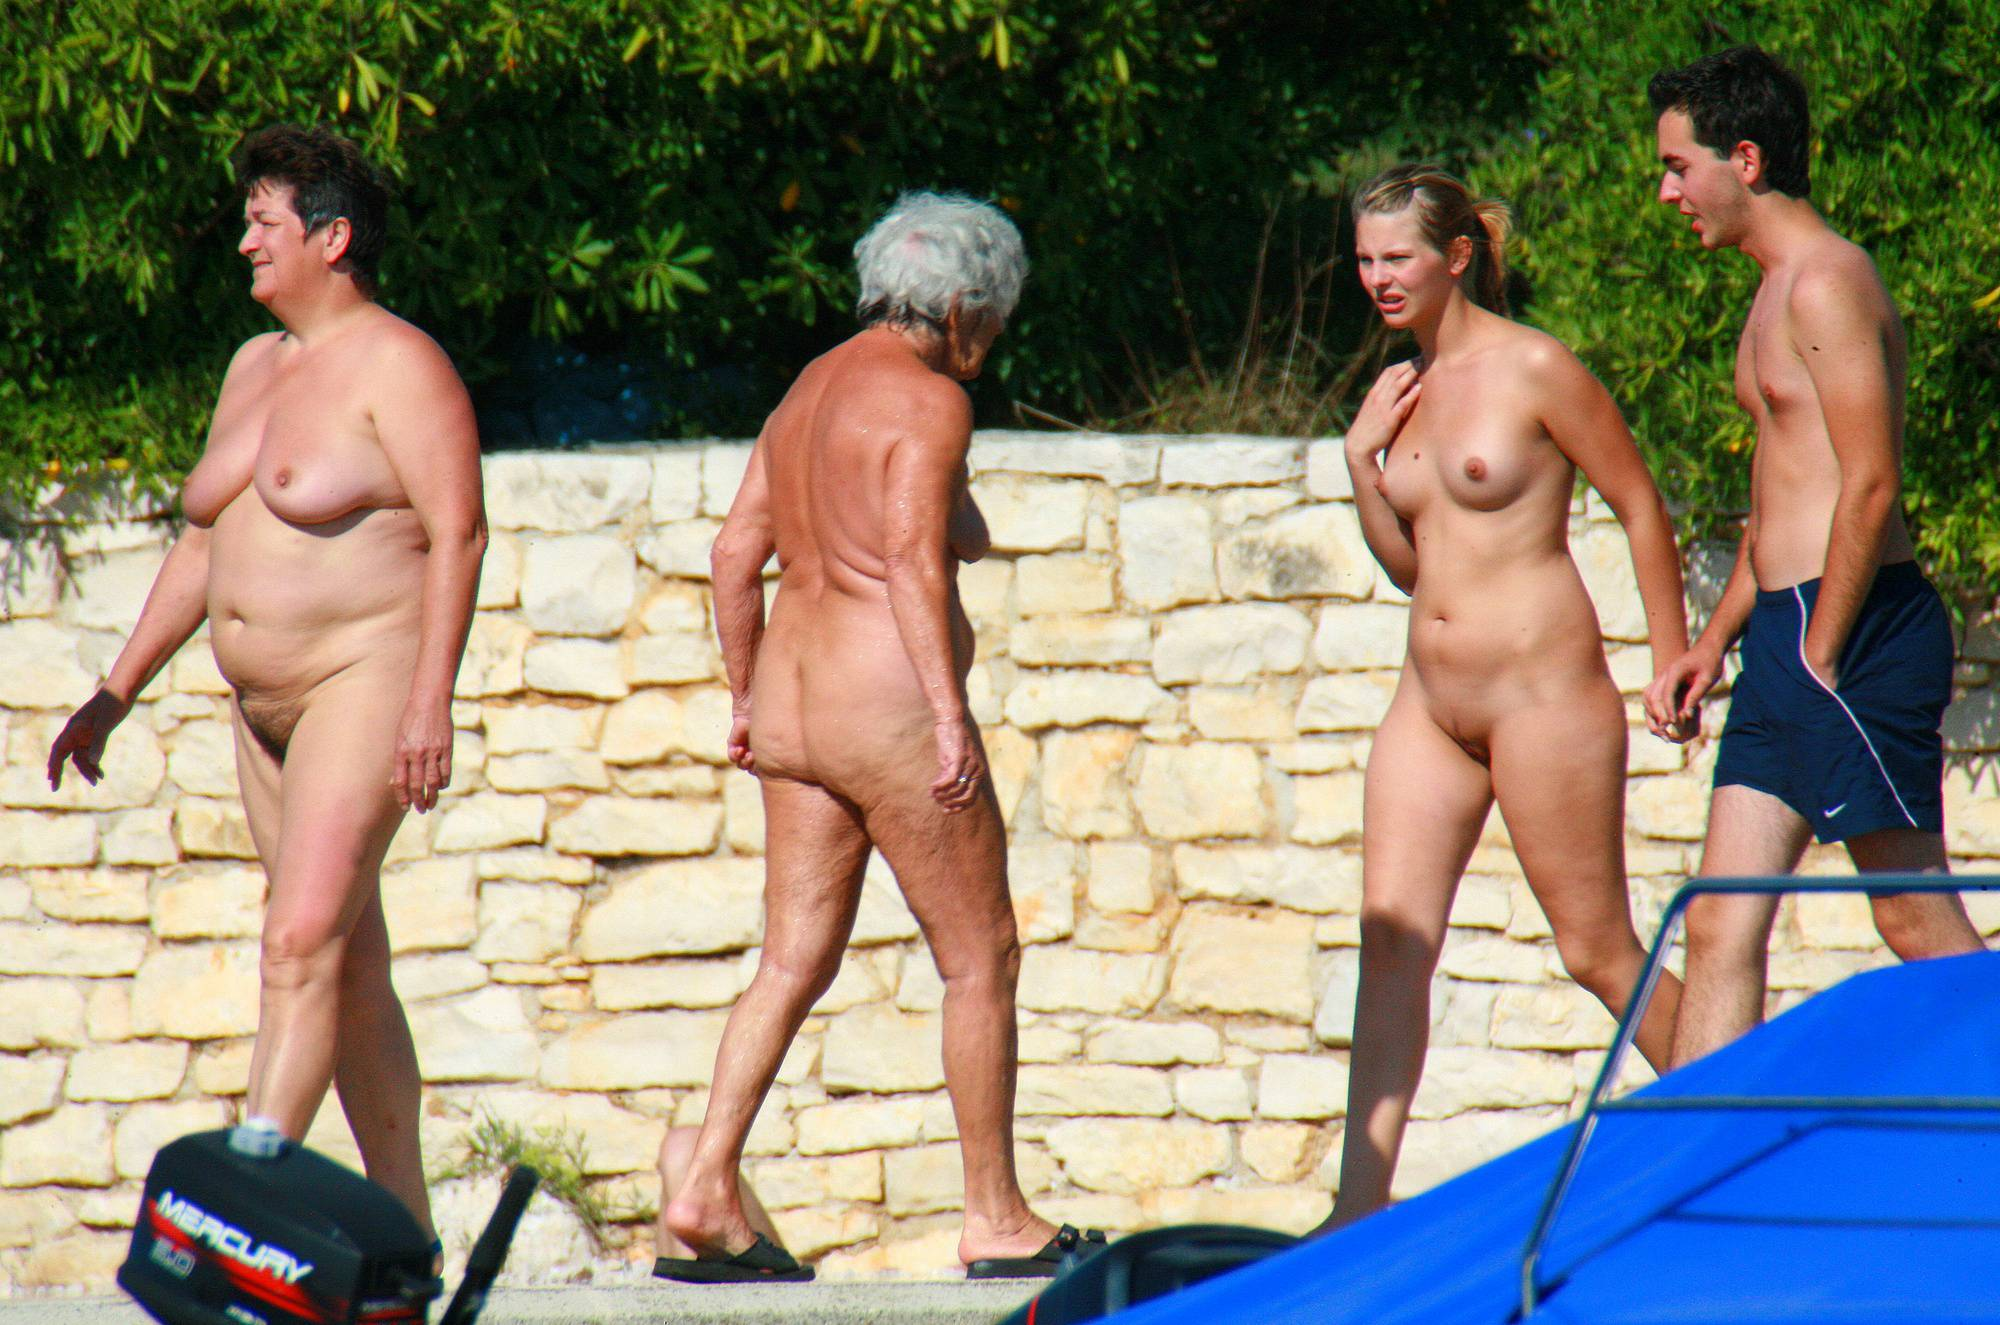 Nudist Photos Ula FKK Couple's Park Tour - 1